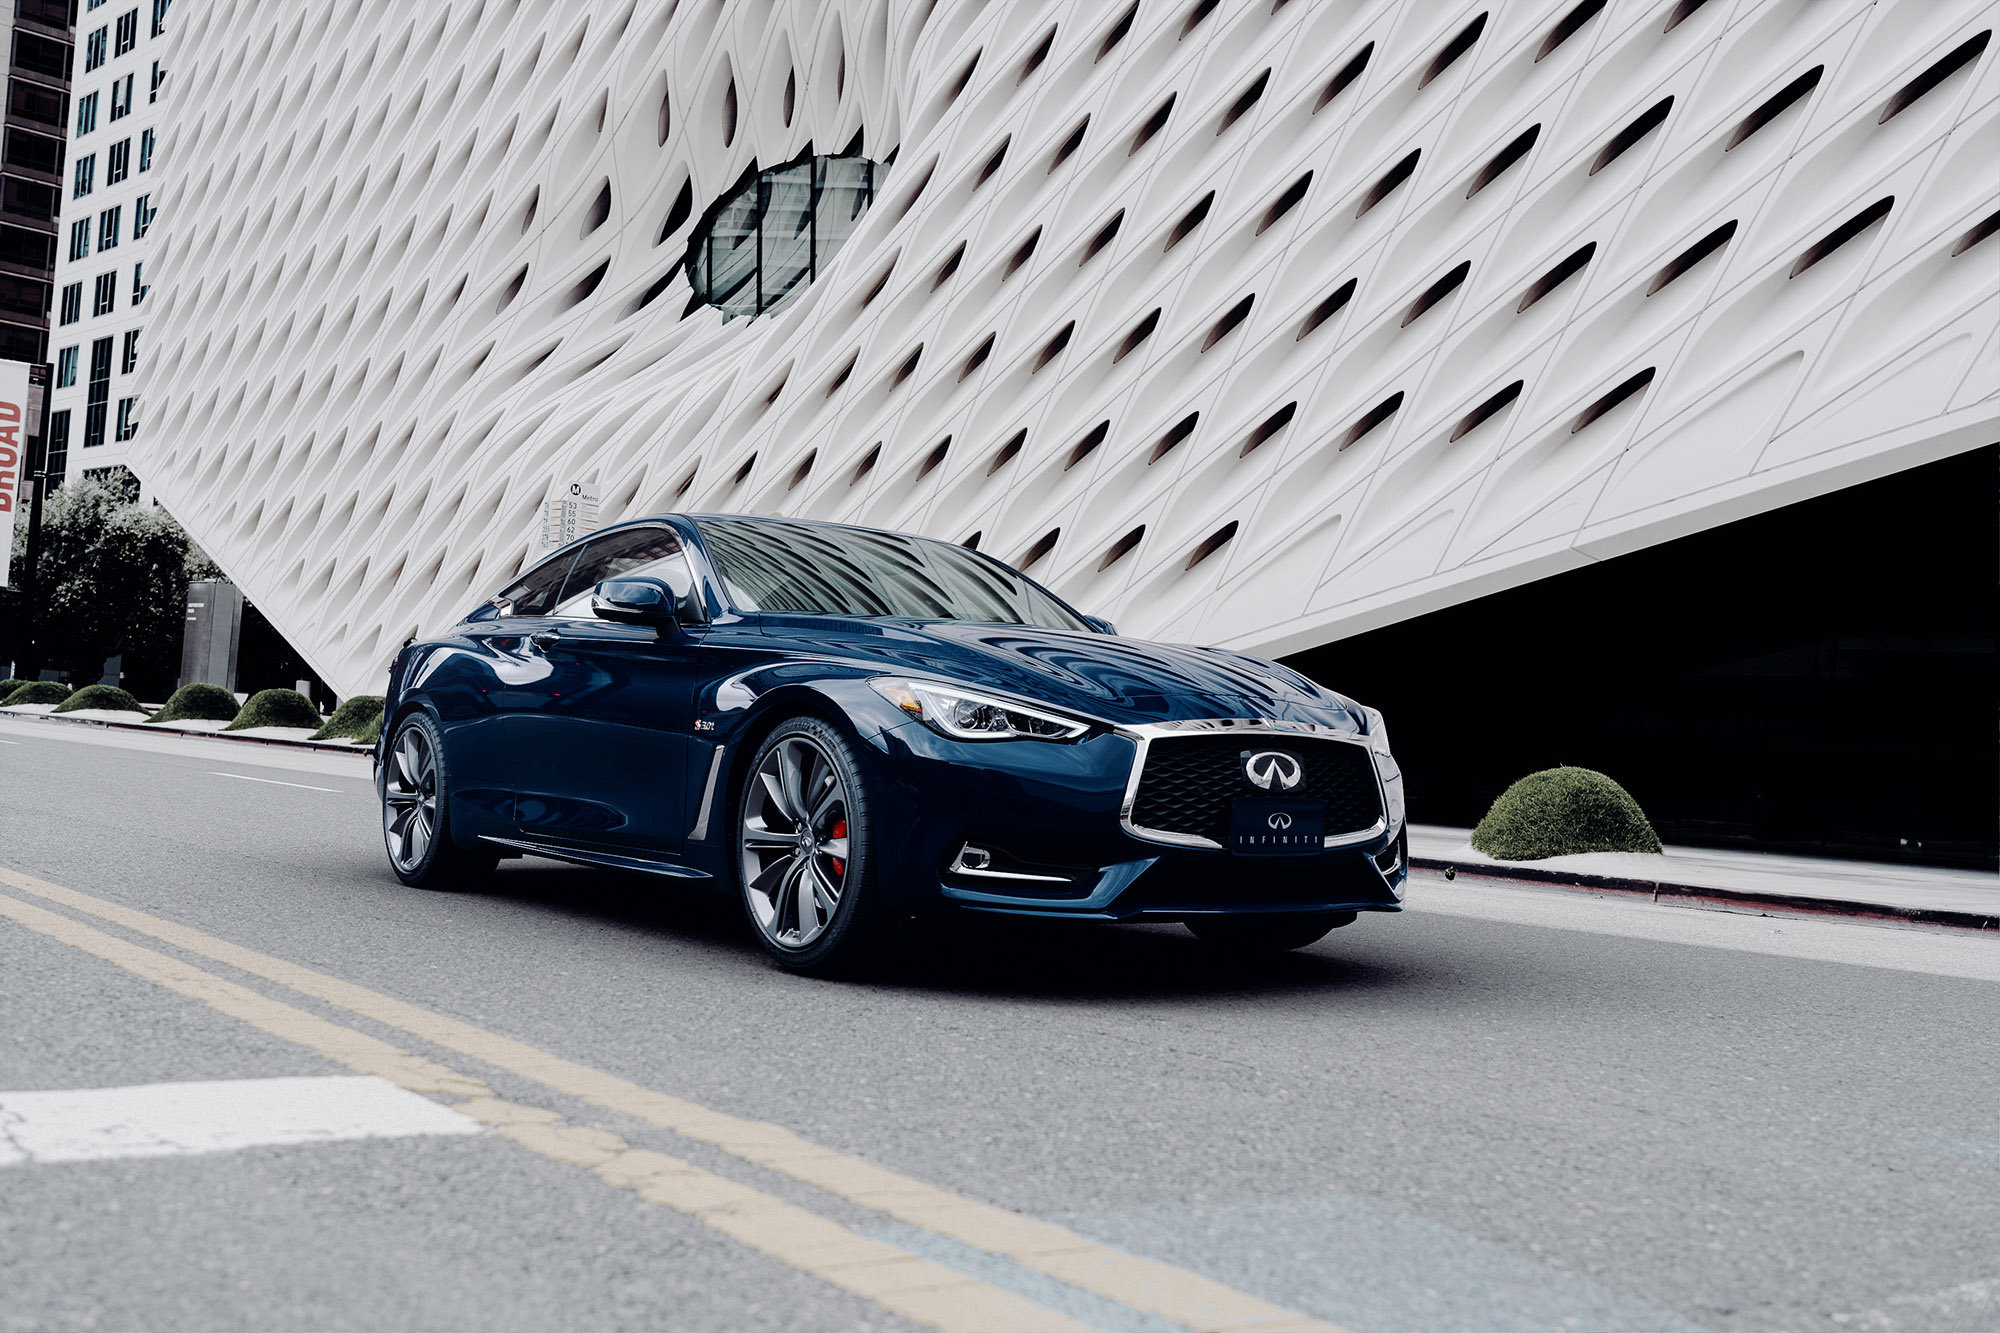 DB_Infiniti_Q60S_THE-BROAD